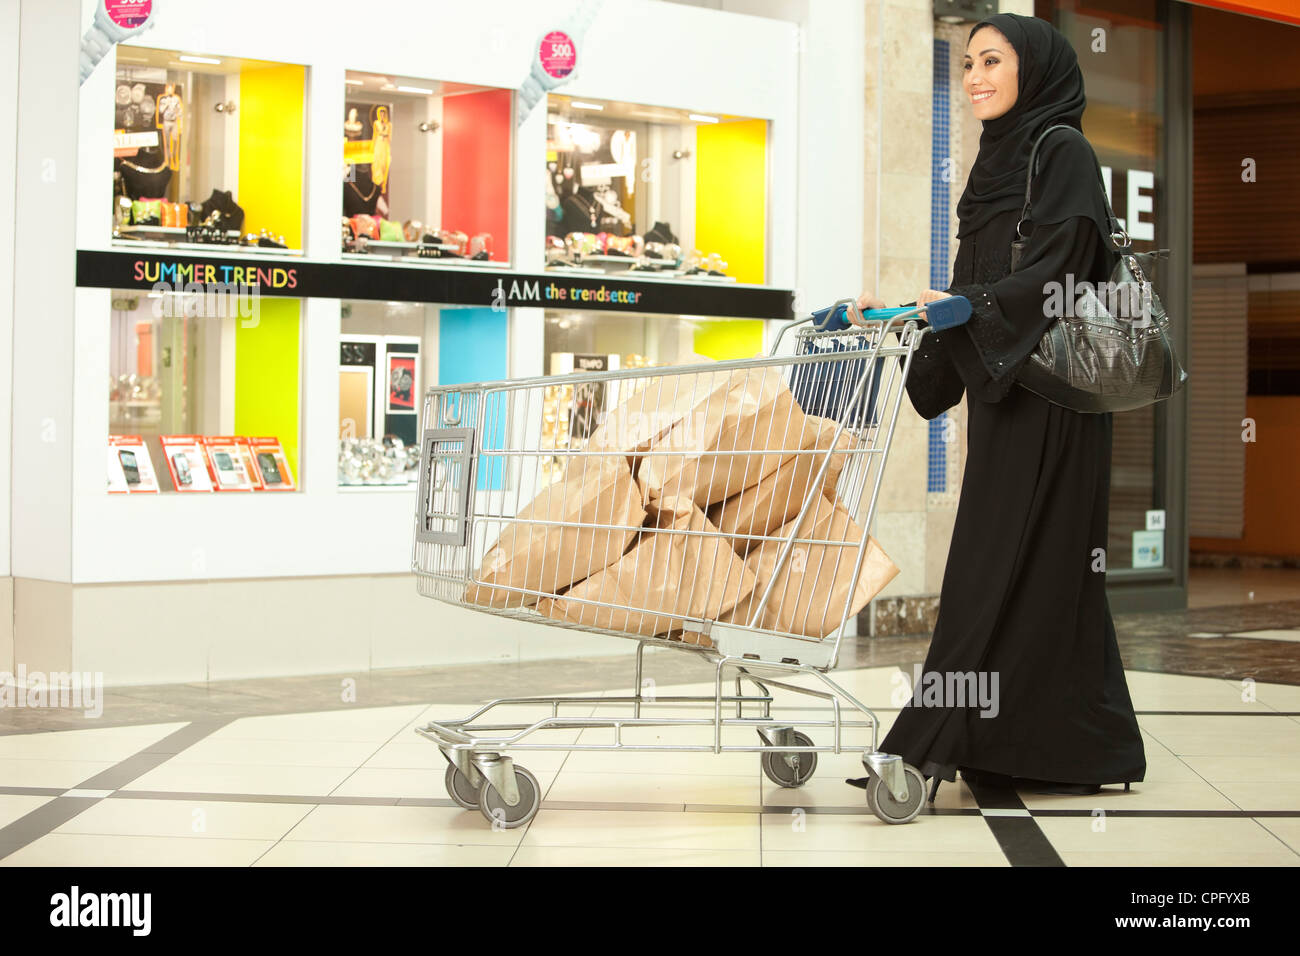 Arab woman with shopping cart walking at the mall, smiling. - Stock Image